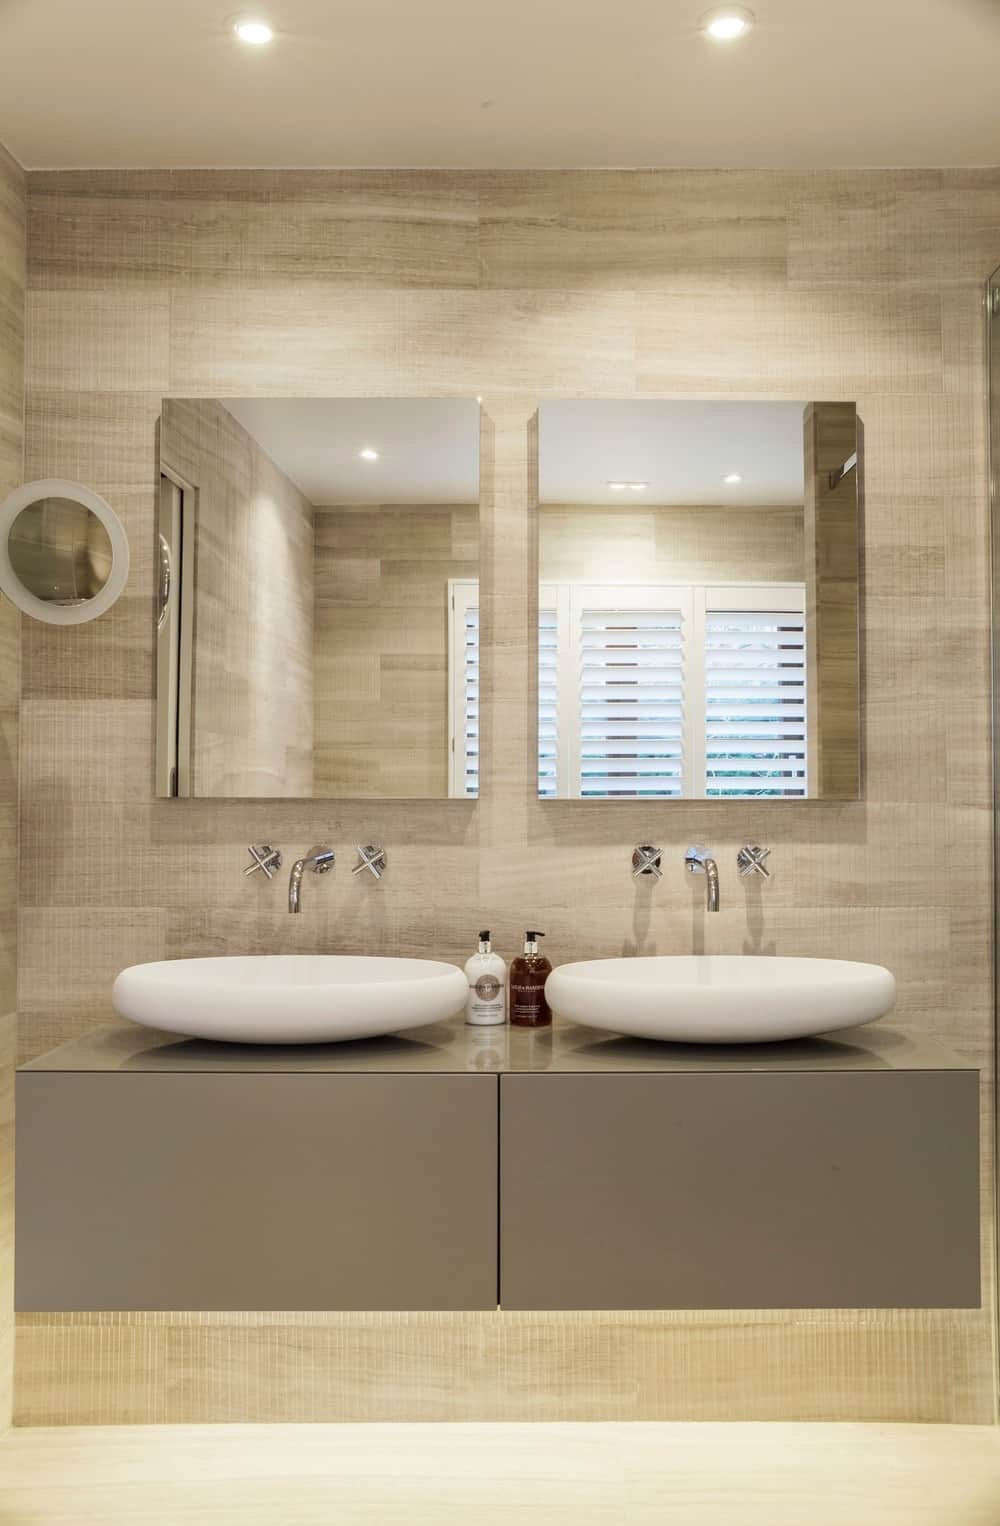 Contemporary bathroom featuring a double floating vanity vessel sink. Photo credit: Photography / Styling : Rick Mccullagh / LLI Design